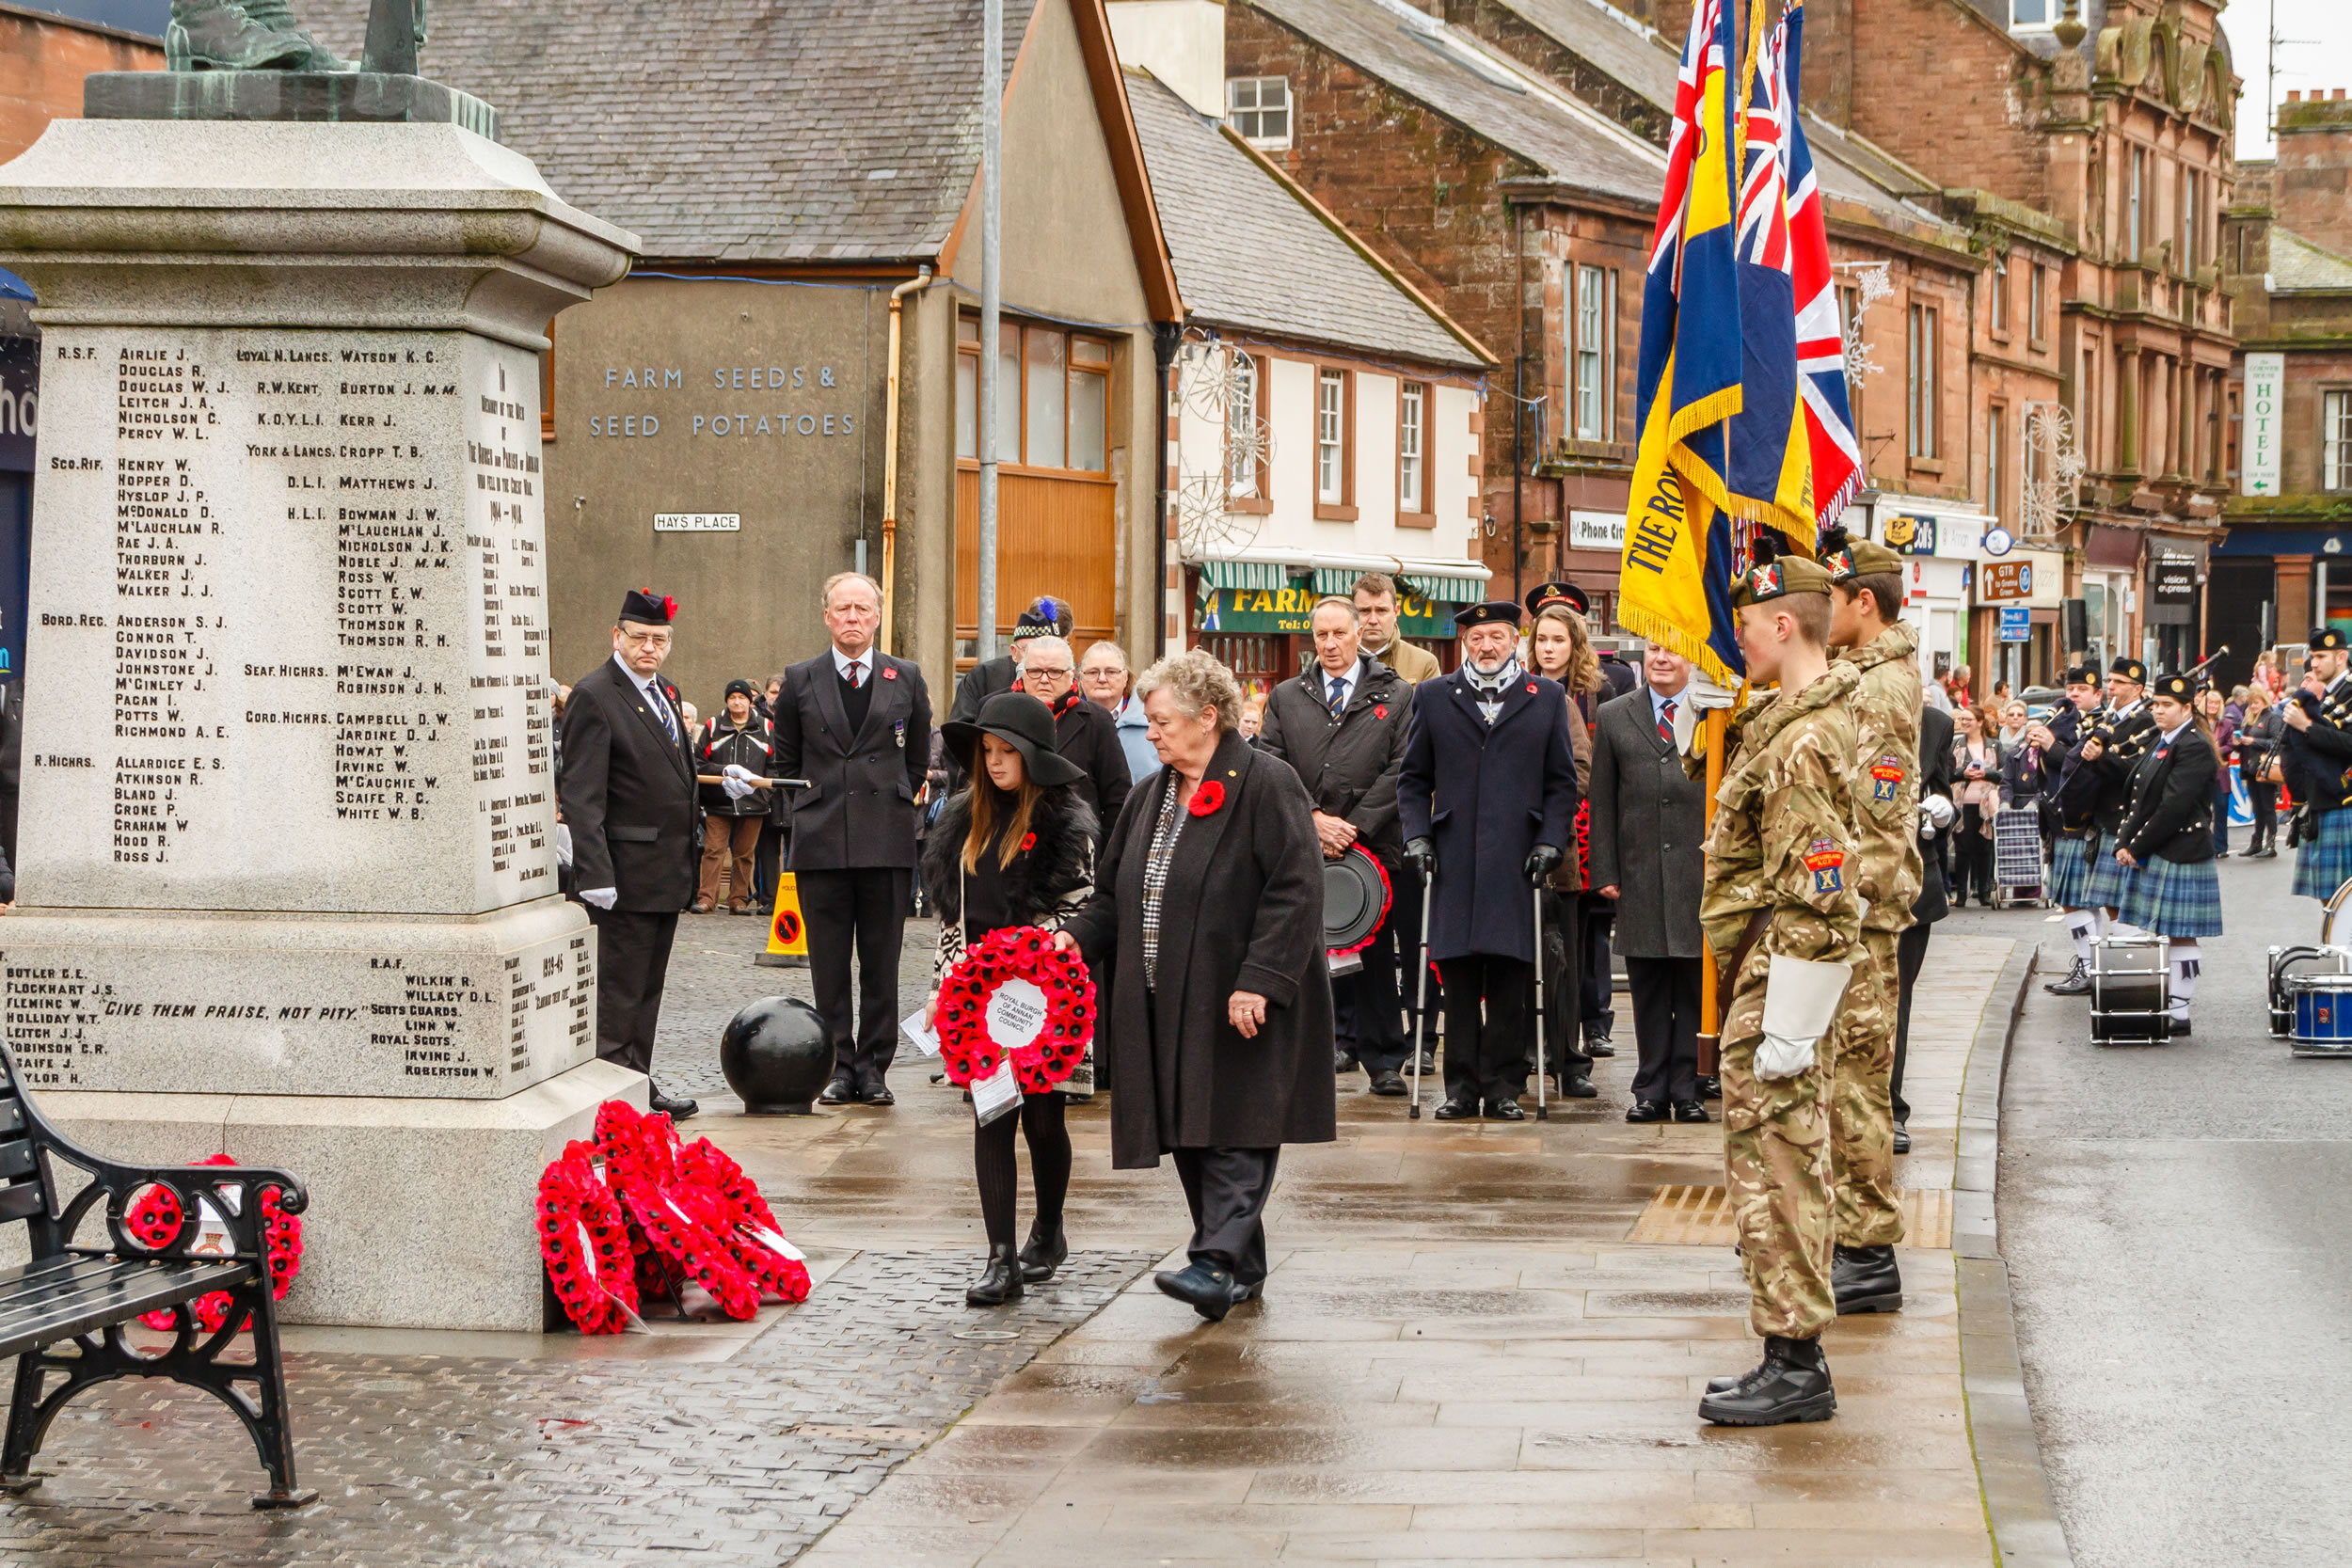 Joyce Wylie and Lucy Cliffe at the Remembrance Day Parade in Annan on Sunday 13th of November 2016